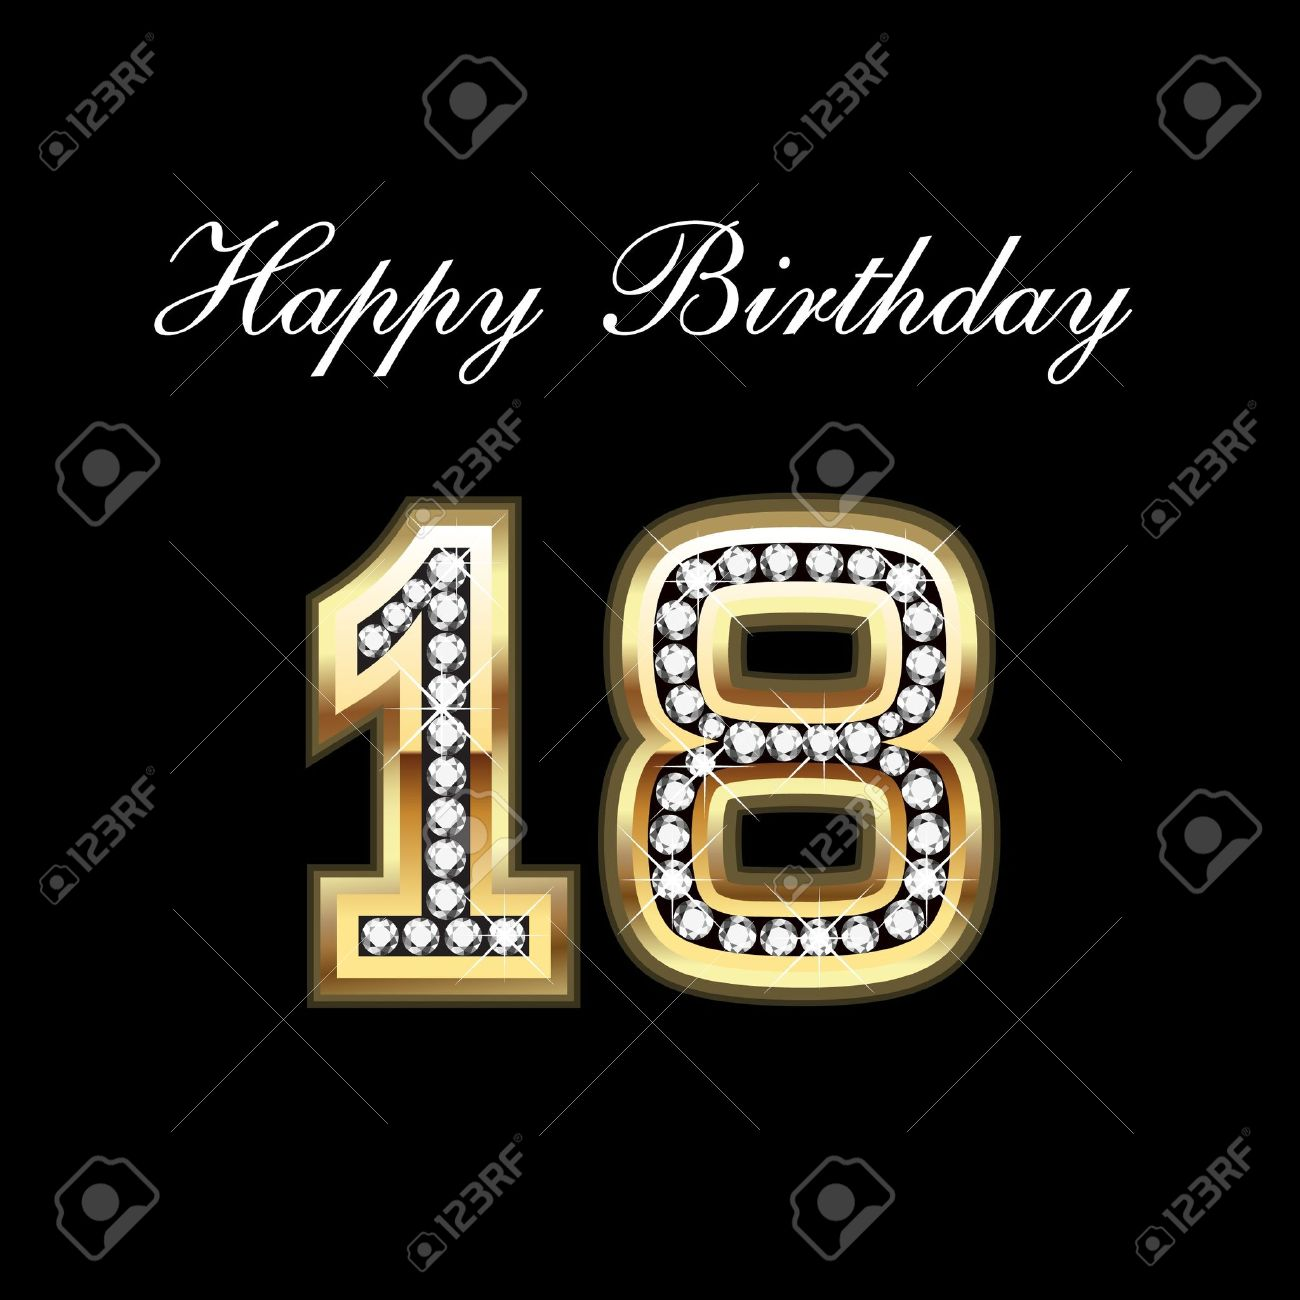 Happy Birthday 18 Royalty Free Cliparts, Vectors, And Stock ... on